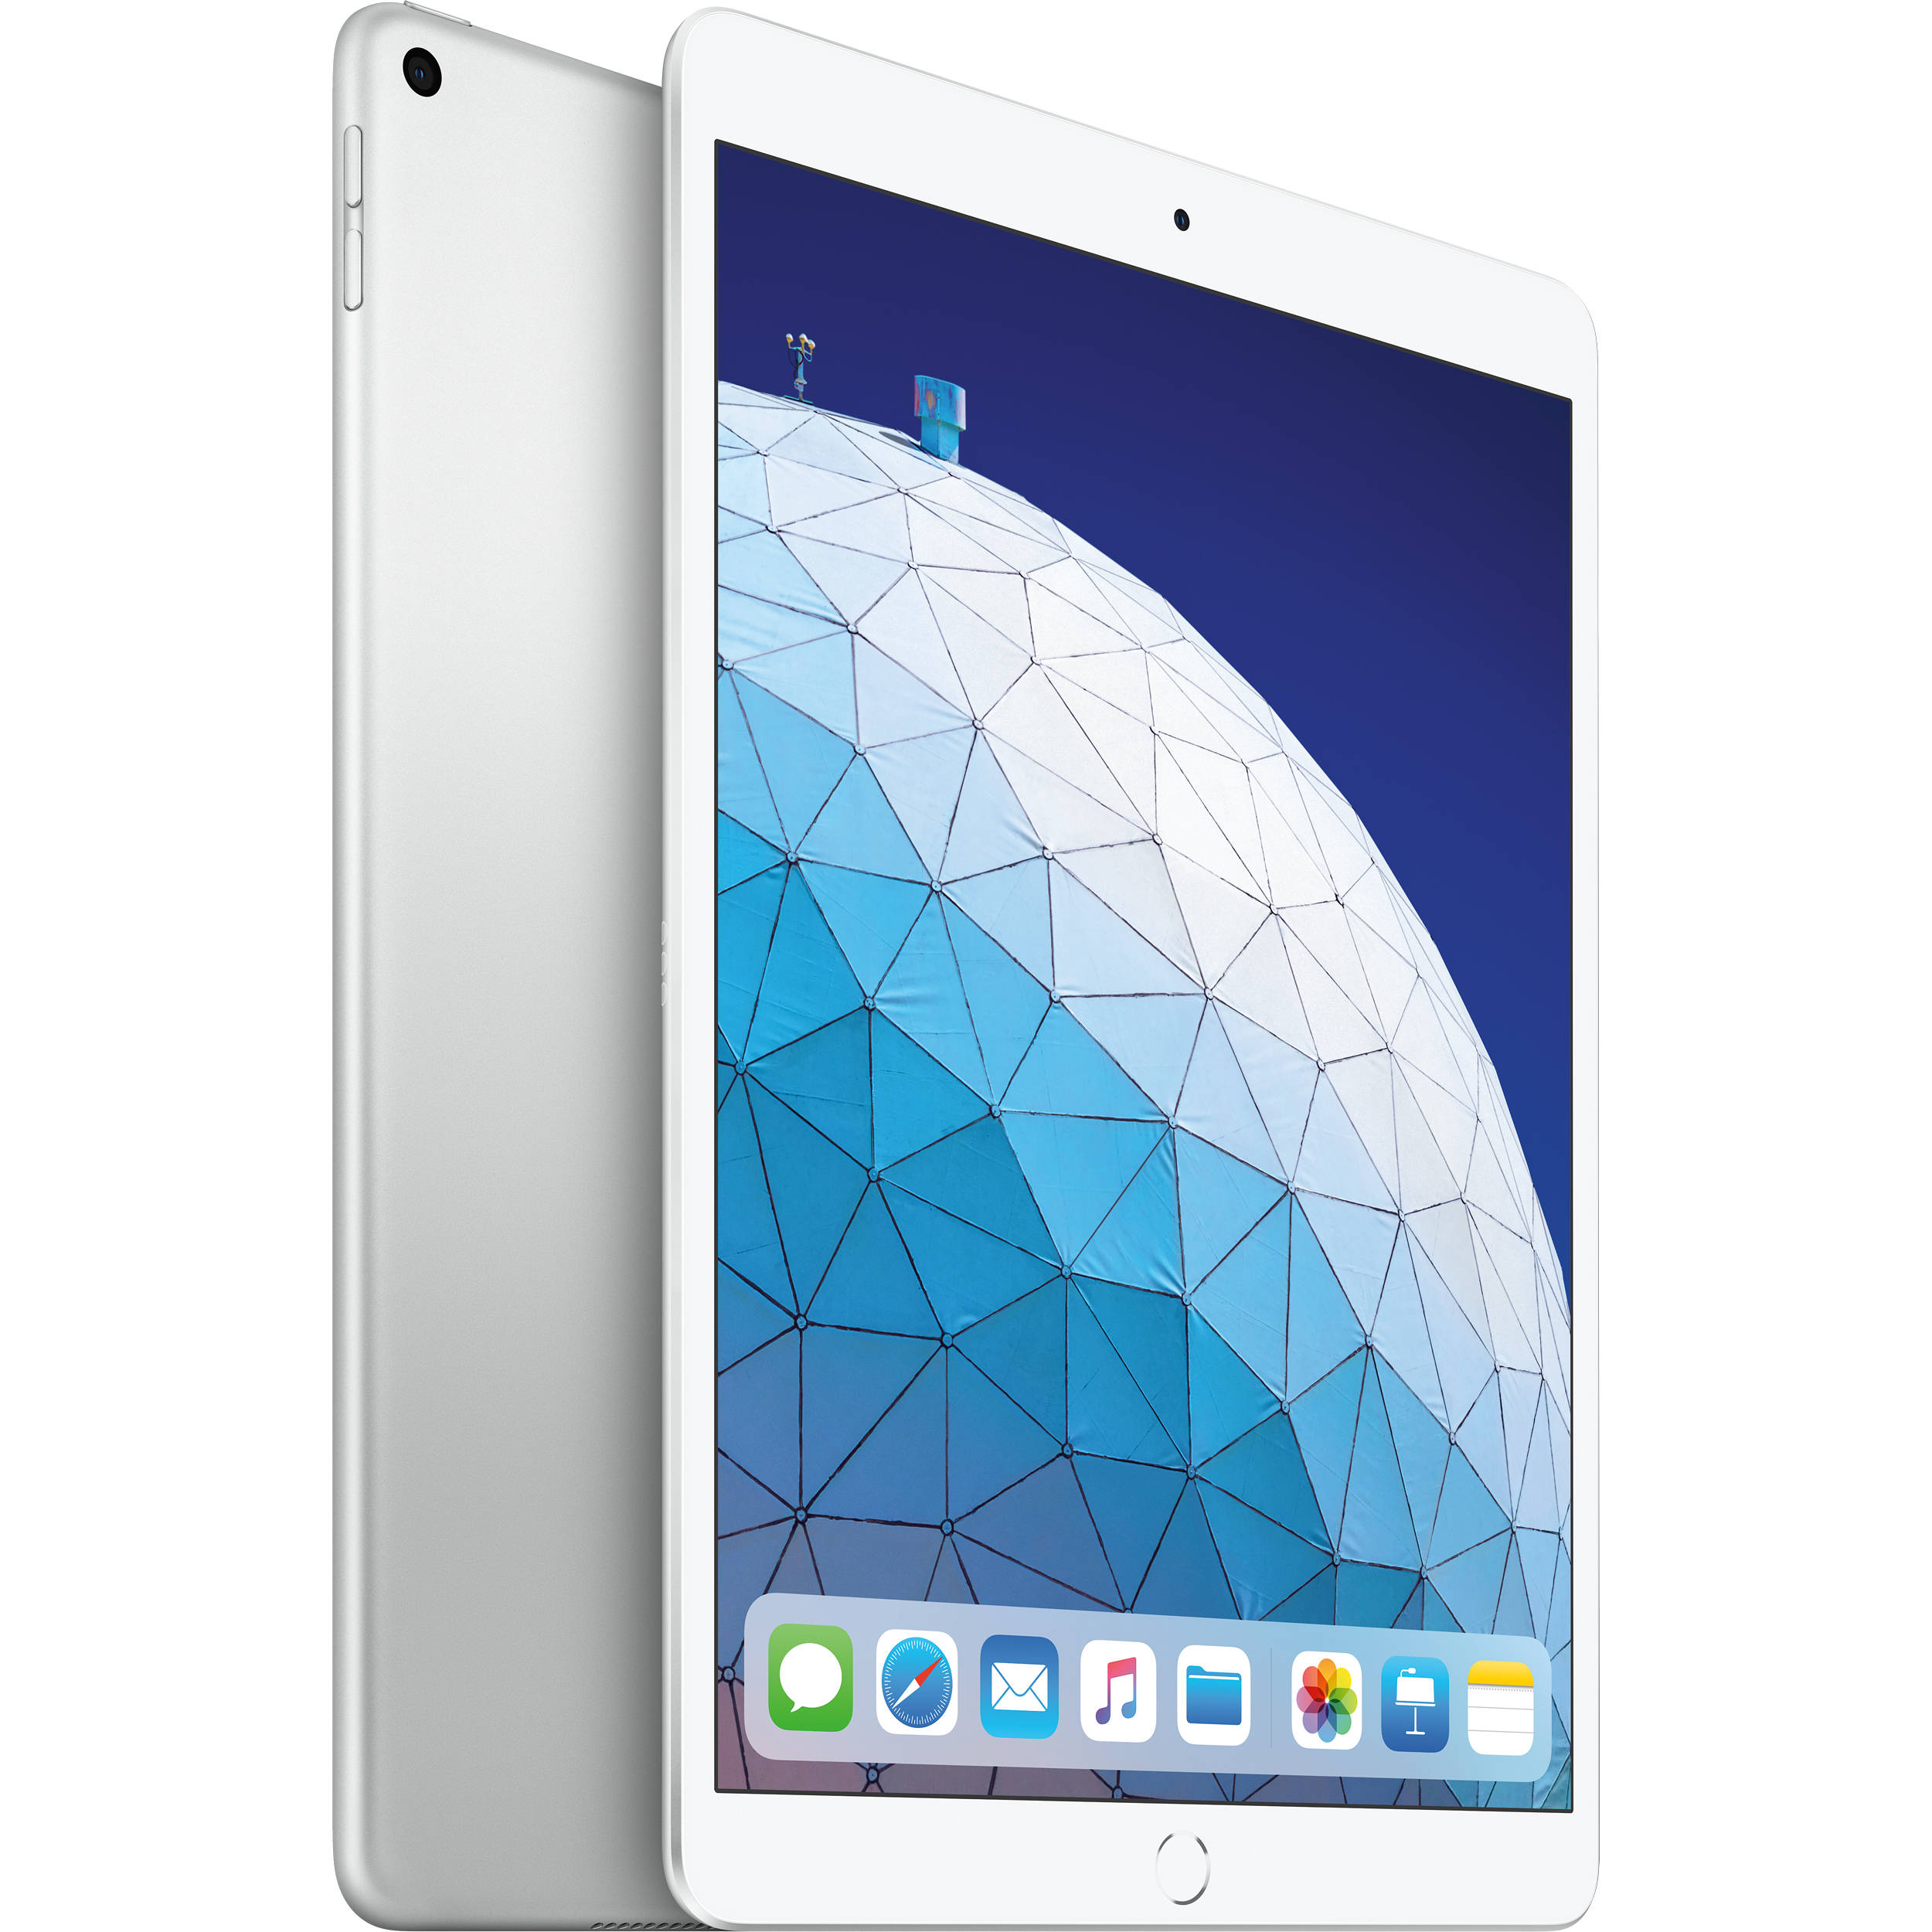 """Image of Apple iPad Air (2019) 10.5"""" MUUK2 64GB WiFi with Tempered Glass Screen Protector and Folding Case (Black) - Silver (with 1 year official Apple Warranty)"""